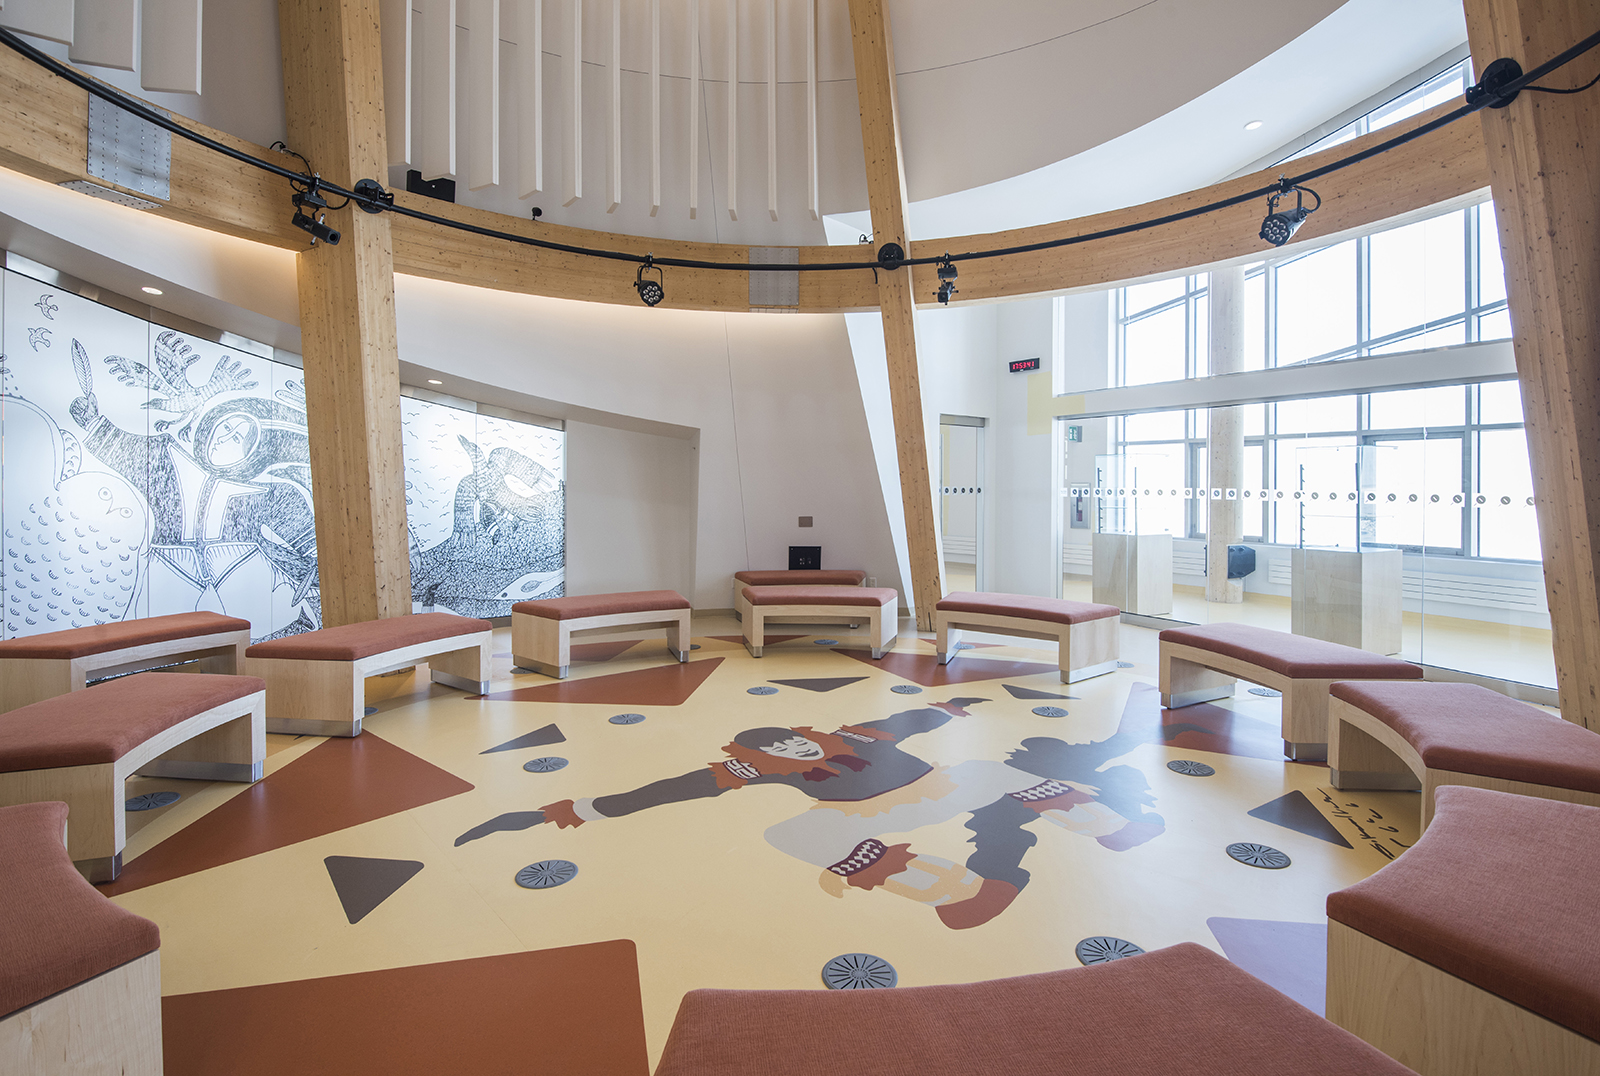 The Canadian High Arctic Research Station comes online | Canadian